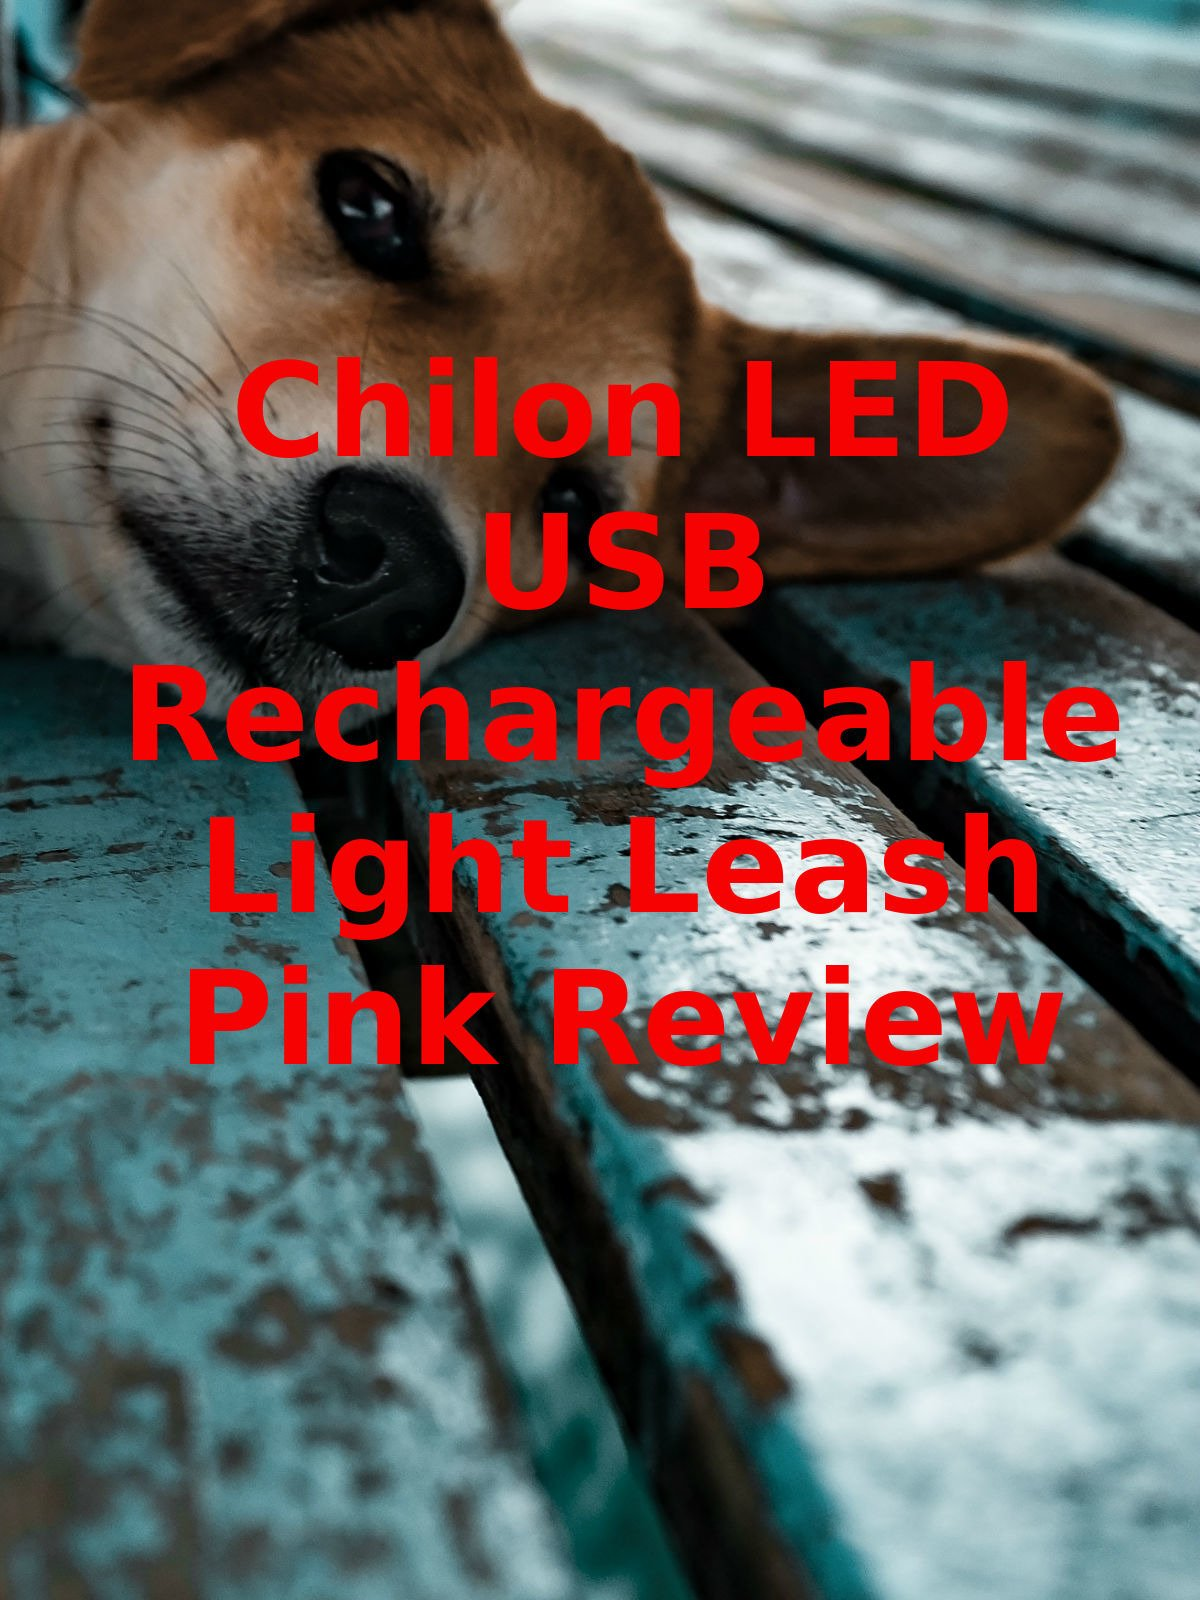 Review: Chilon LED USB Rechargeable Light Leash Pink Review on Amazon Prime Instant Video UK